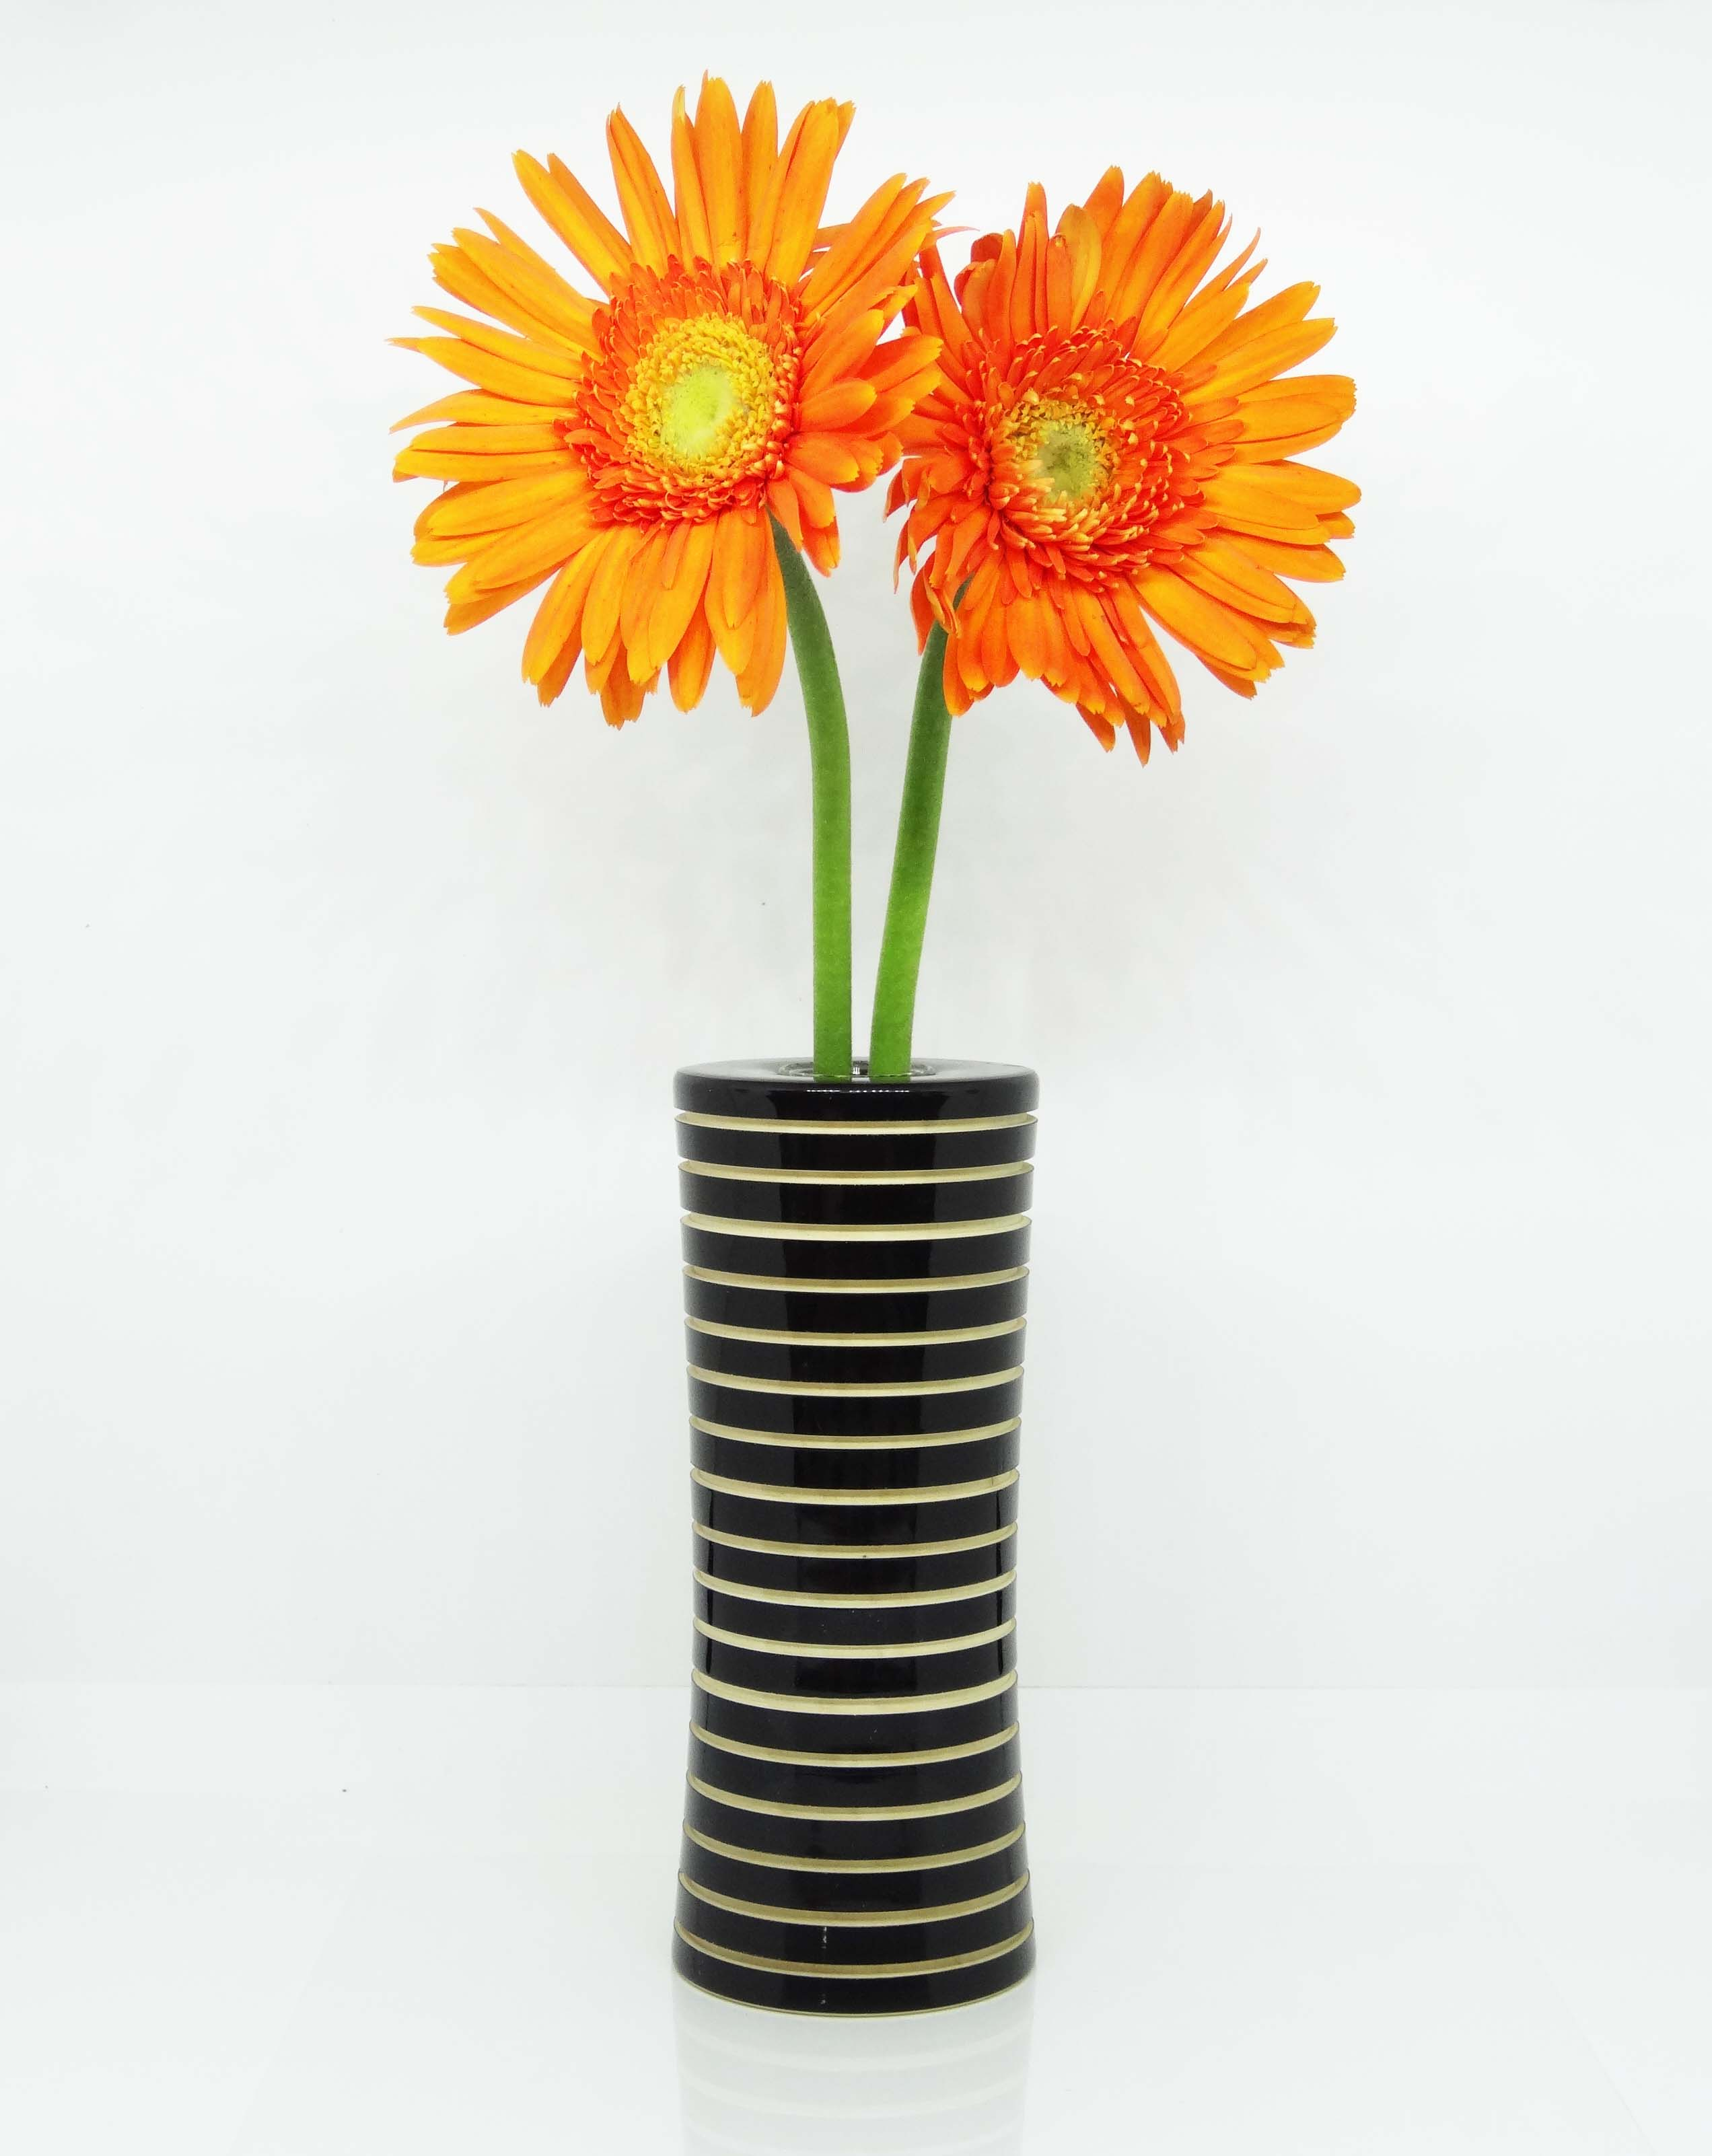 Show pictures of flowers in vase